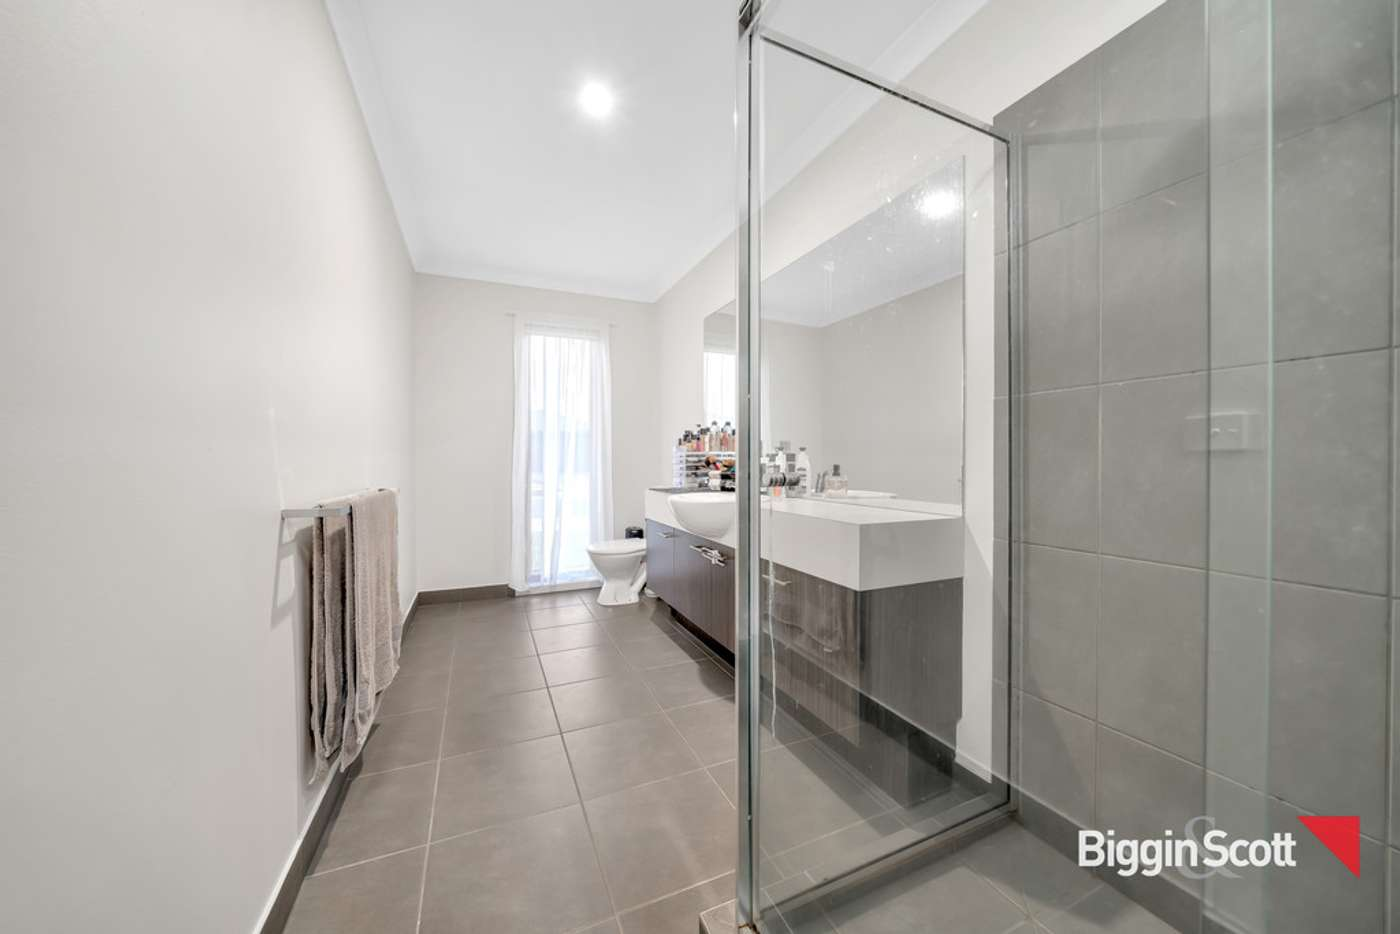 Fifth view of Homely house listing, 12 Bateman Drive, Harkness VIC 3337